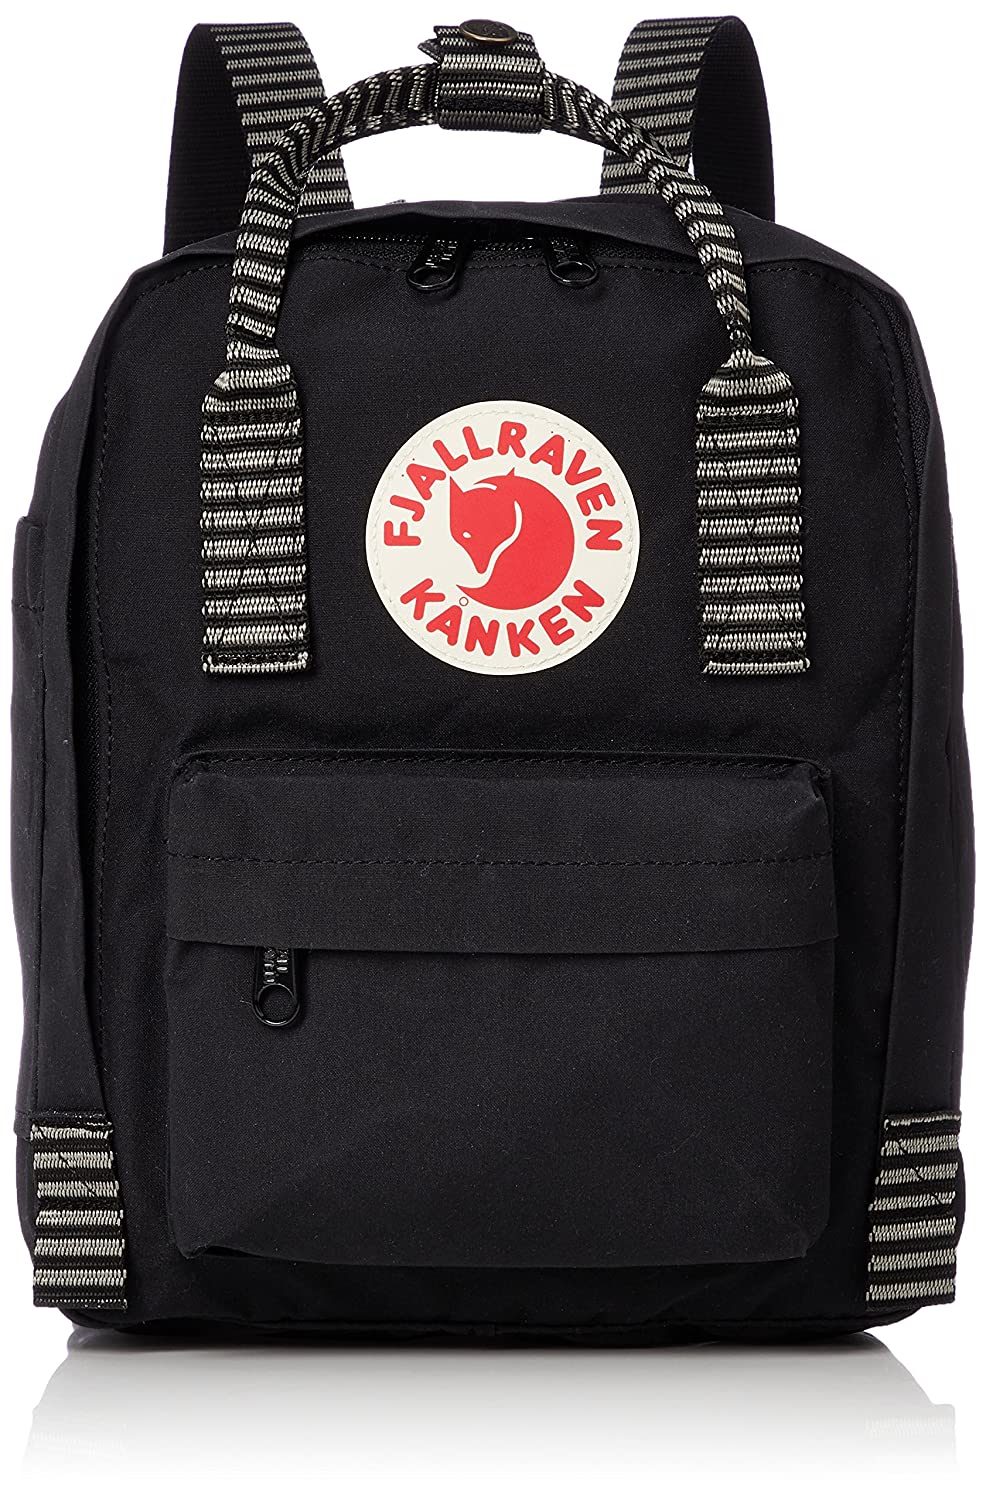 [フェールラーベン] リュック Kanken Mini 23561-Official B07994XHHW Black-Striped Black-Striped